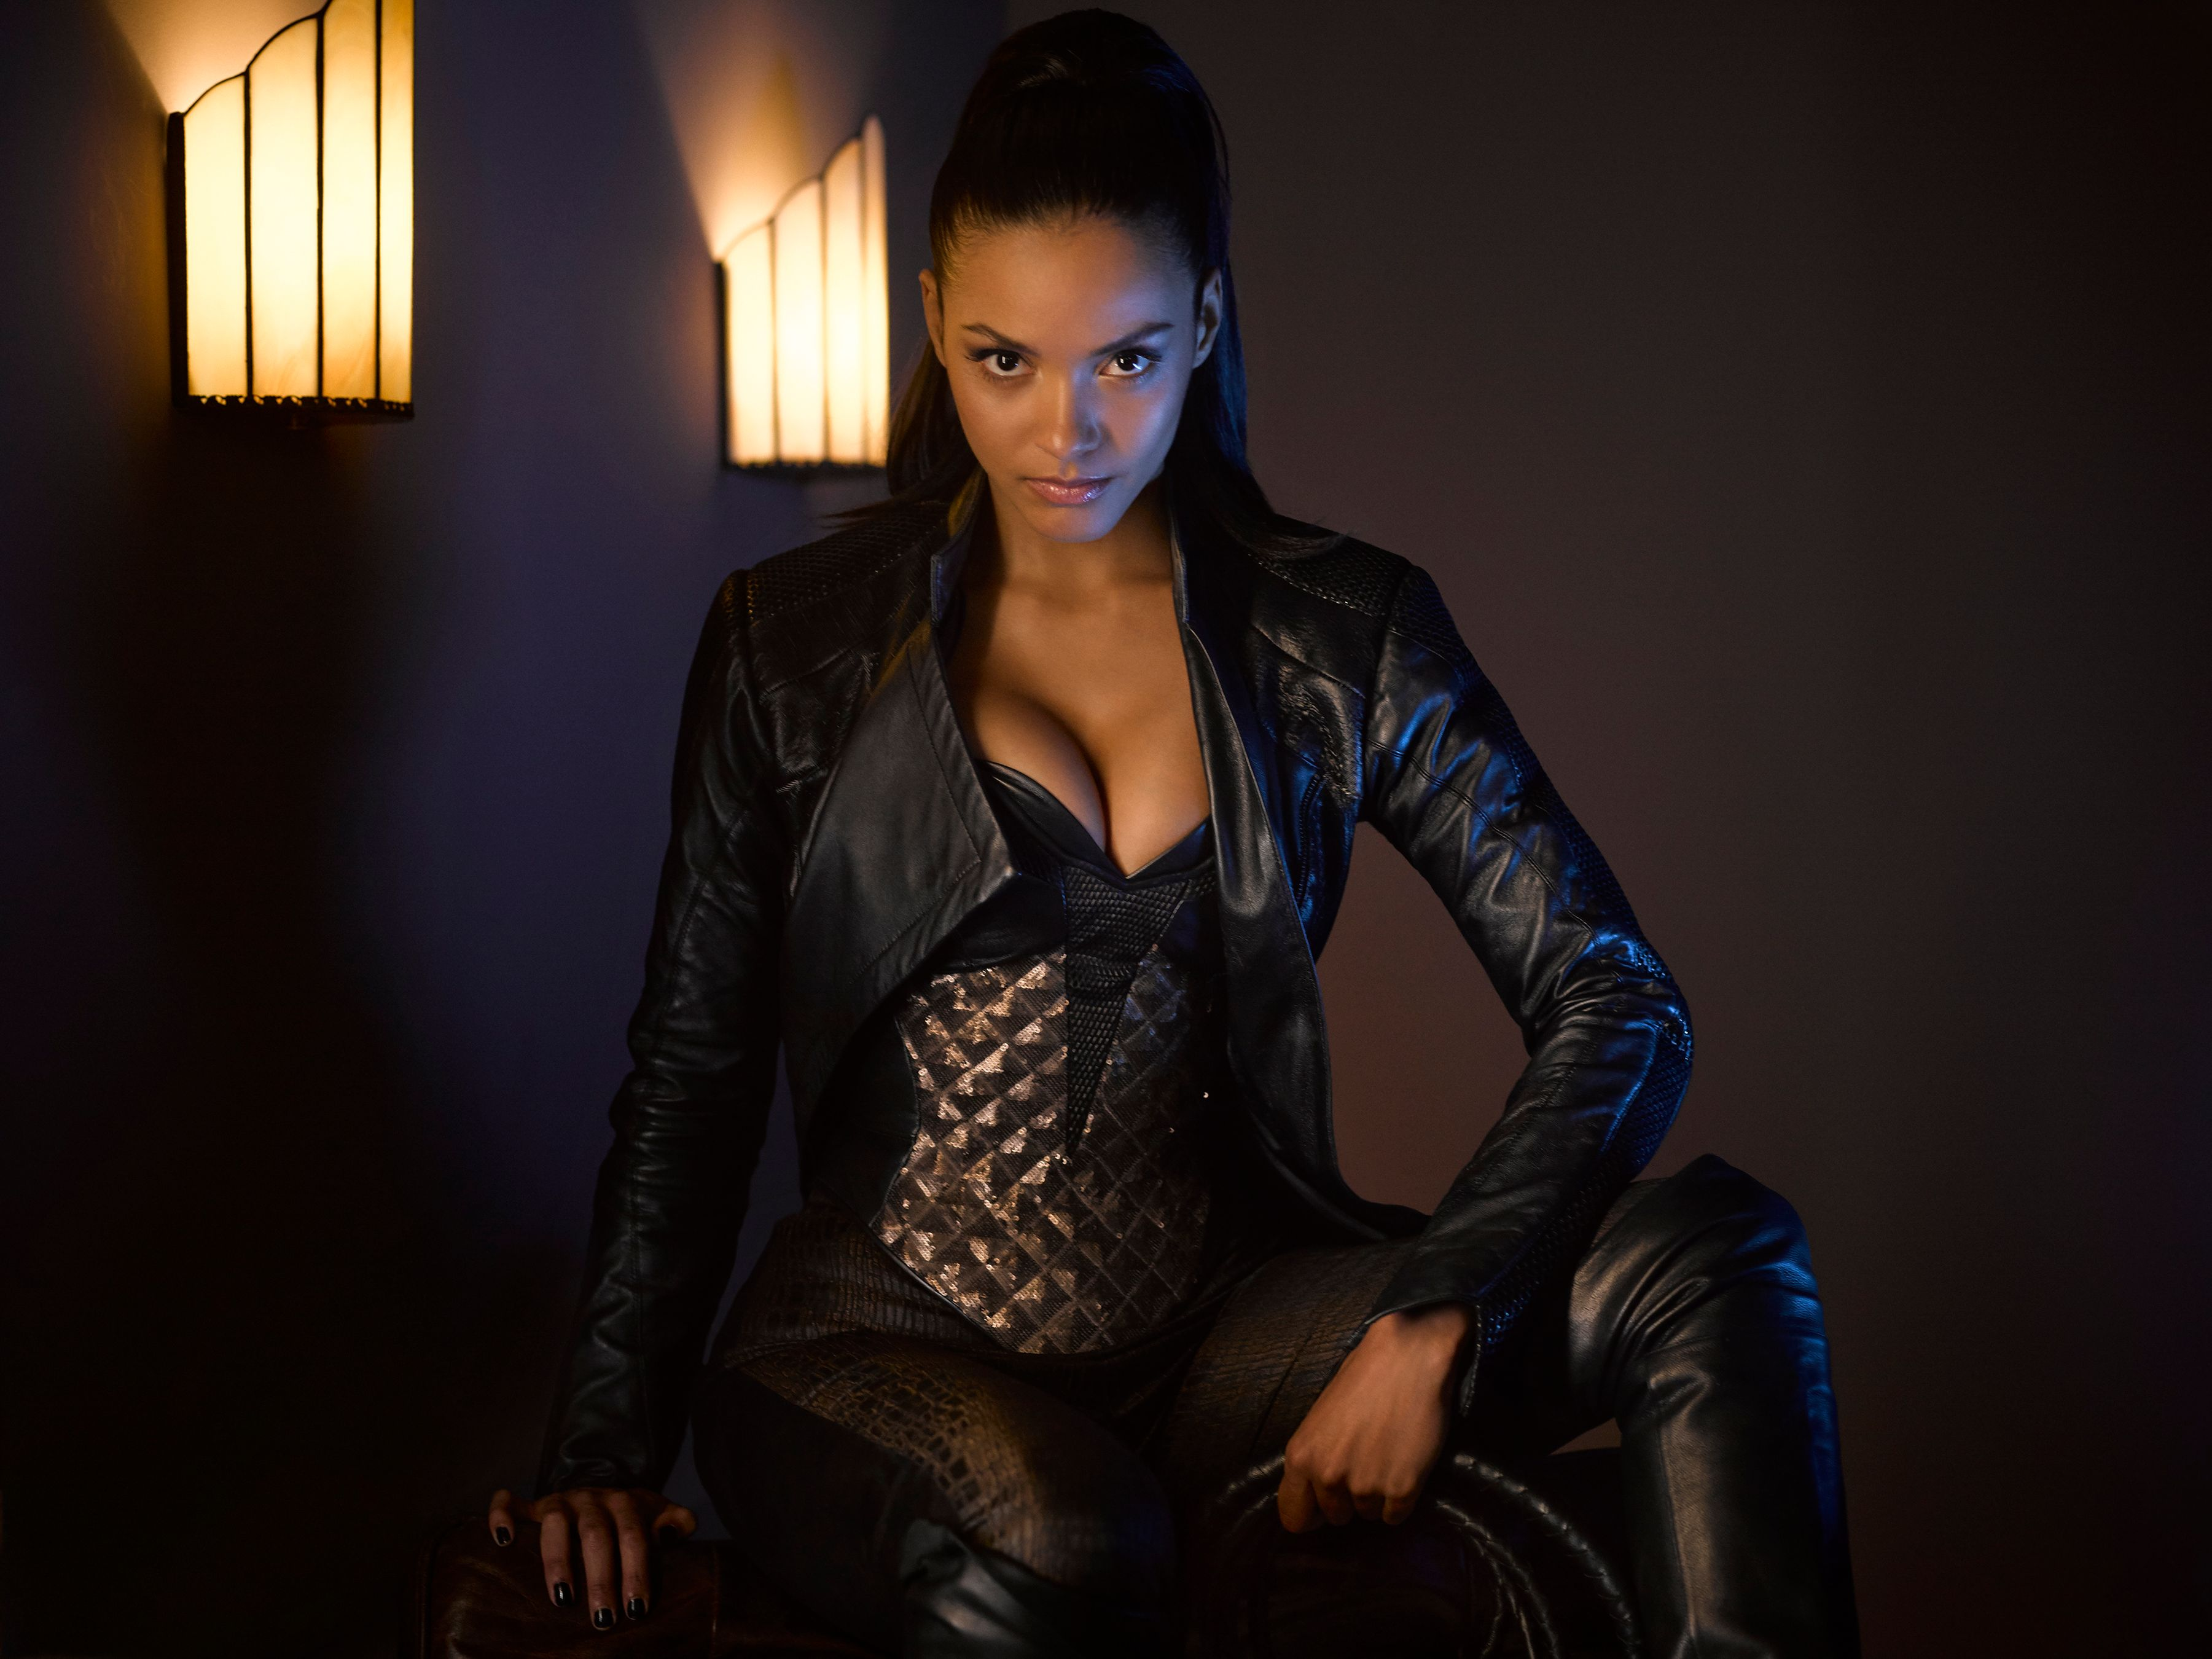 gotham black single women Are sexbots already single women in 2017 that's right–just like something out of an episode of black mirror or westworld–sexbots may also gotham club.